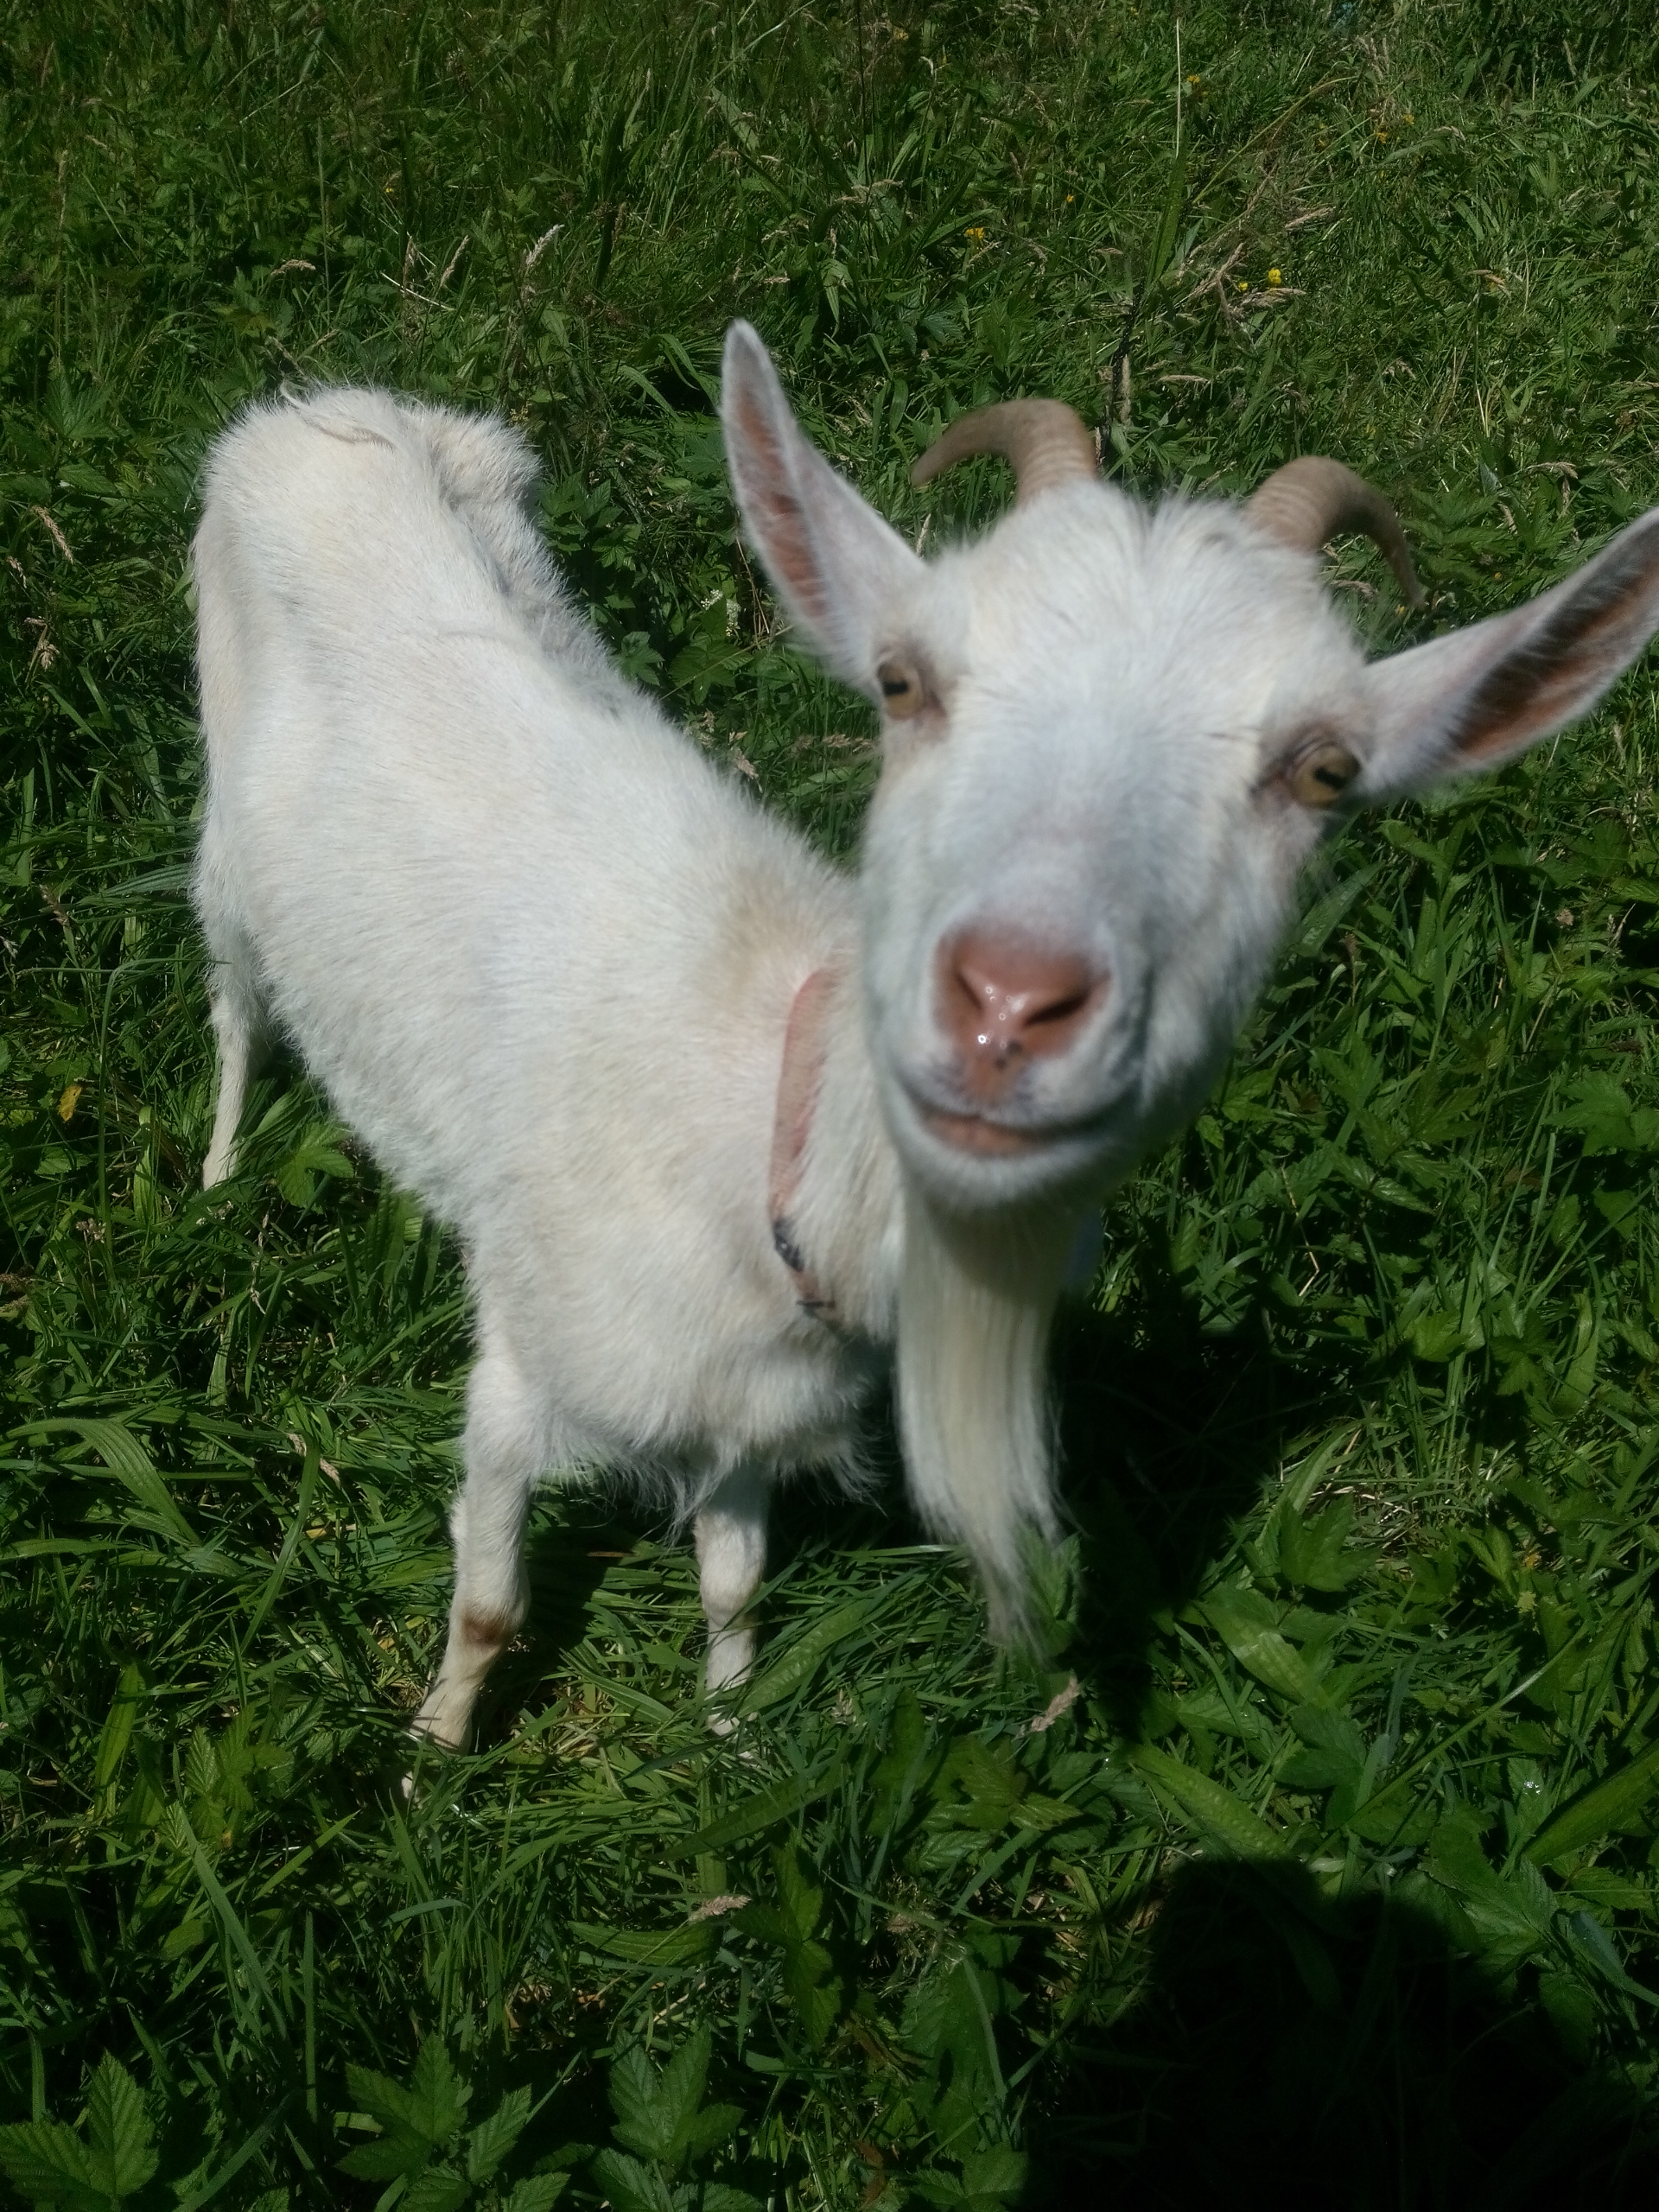 Heather the friendly goat